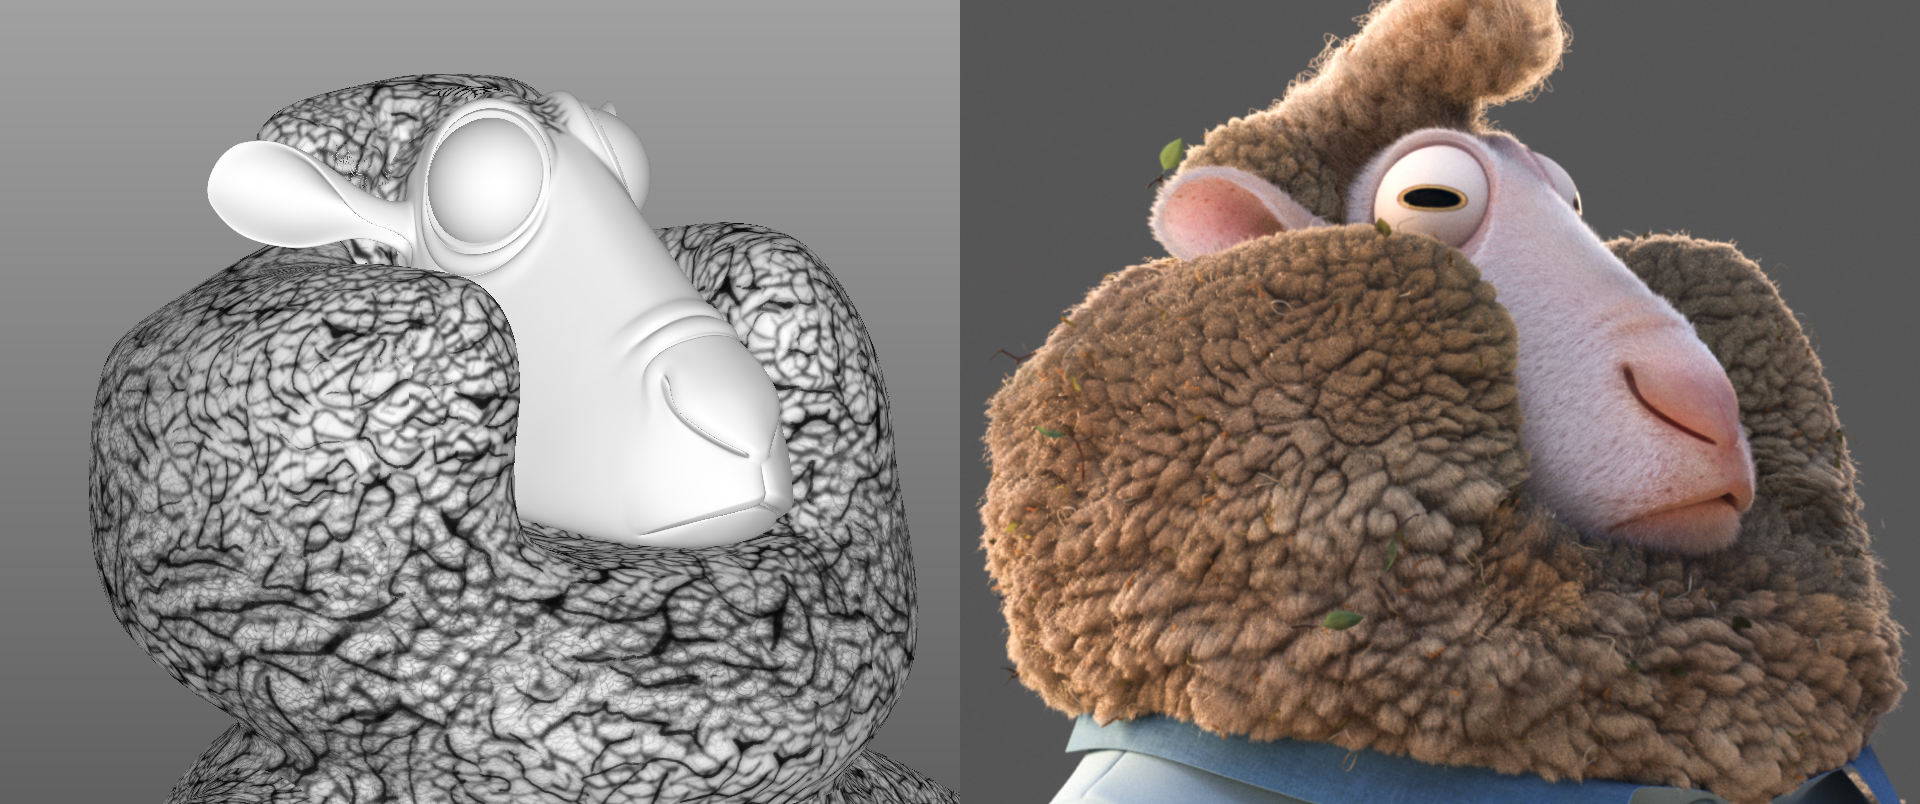 zootopia's fur and other technologies - on maya - light years ahead